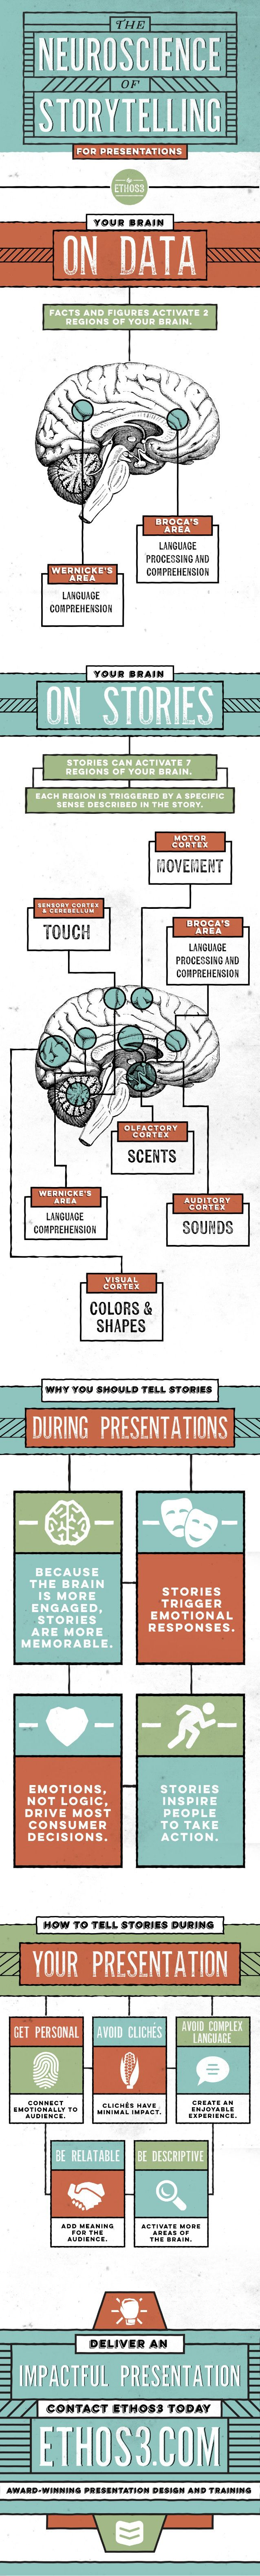 storytelling-infographic